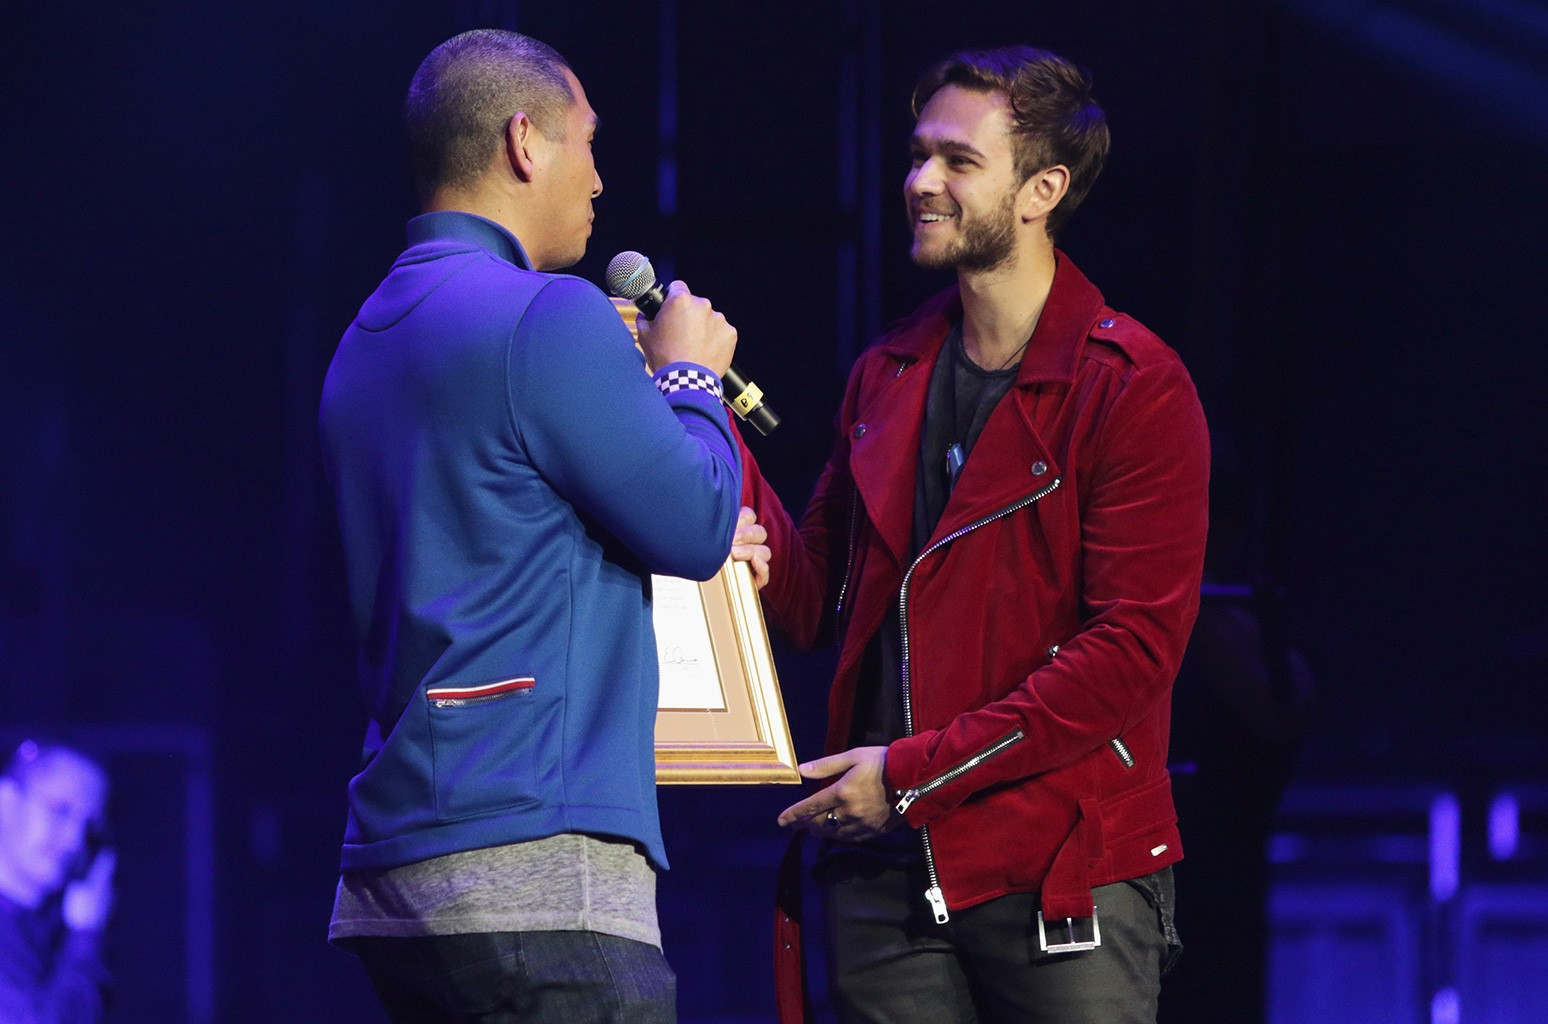 Zedd recieves a placque from the Mayors Office during Zedd Presents WELCOME! - Fundraising Concert Benefiting The ACLU - Show at Staples Center on April 3, 2017 in Los Angeles.